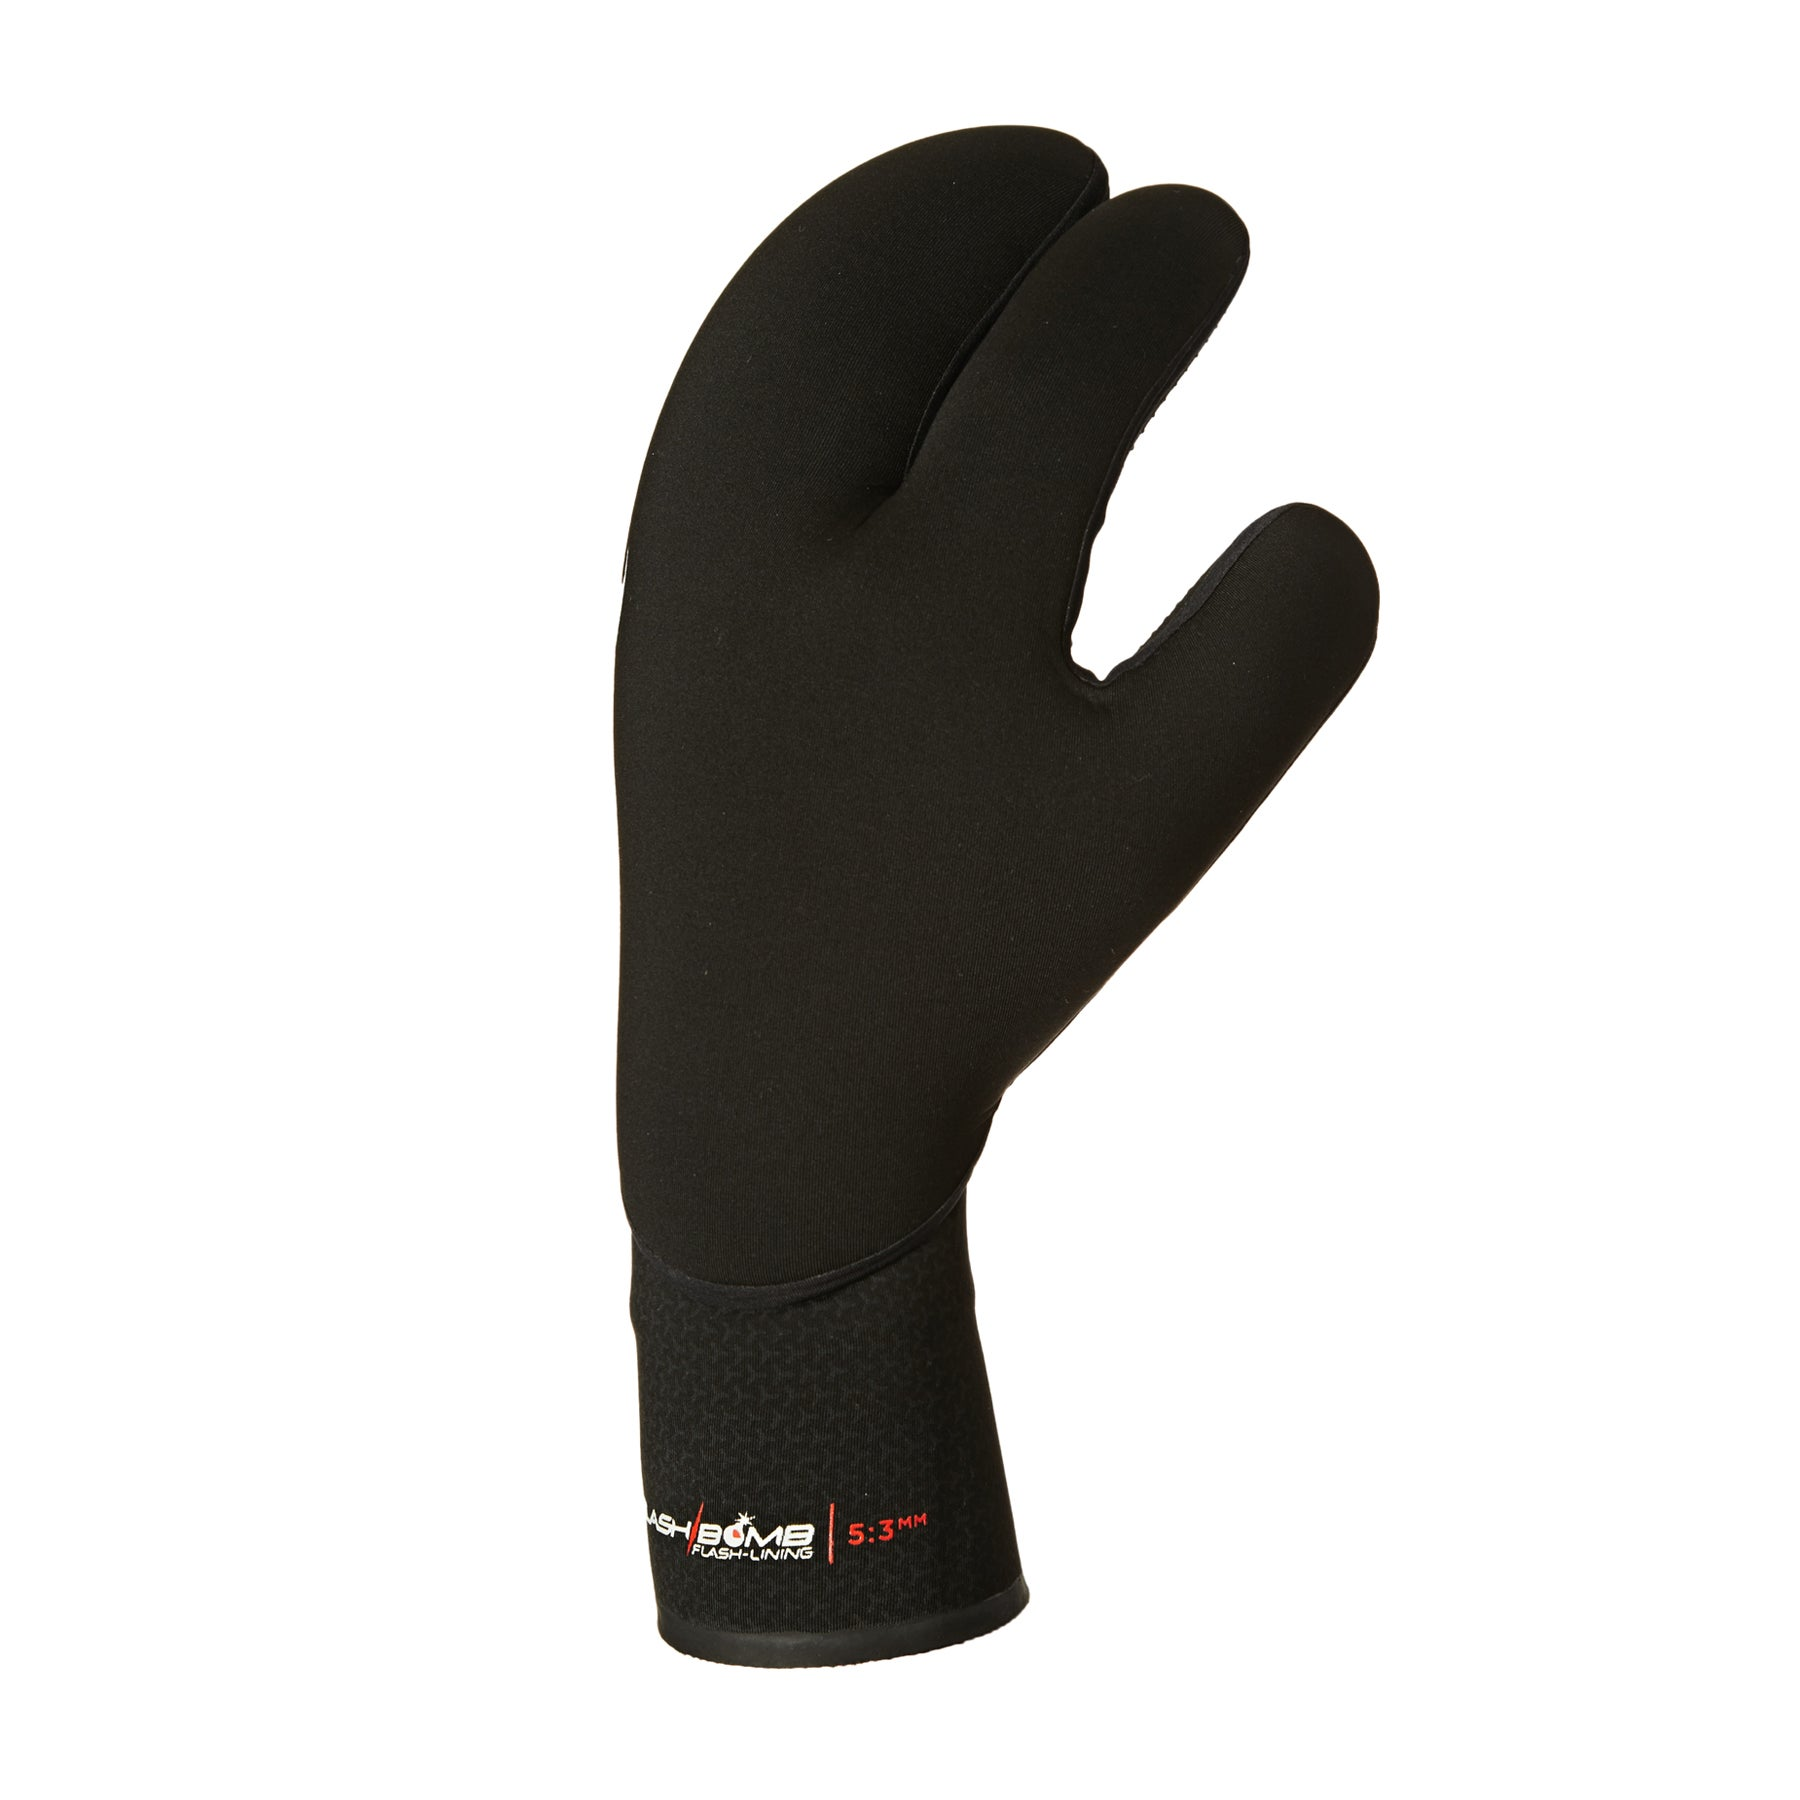 Rip Curl Flashbomb 53mm 2018 Claw Wetsuit Gloves